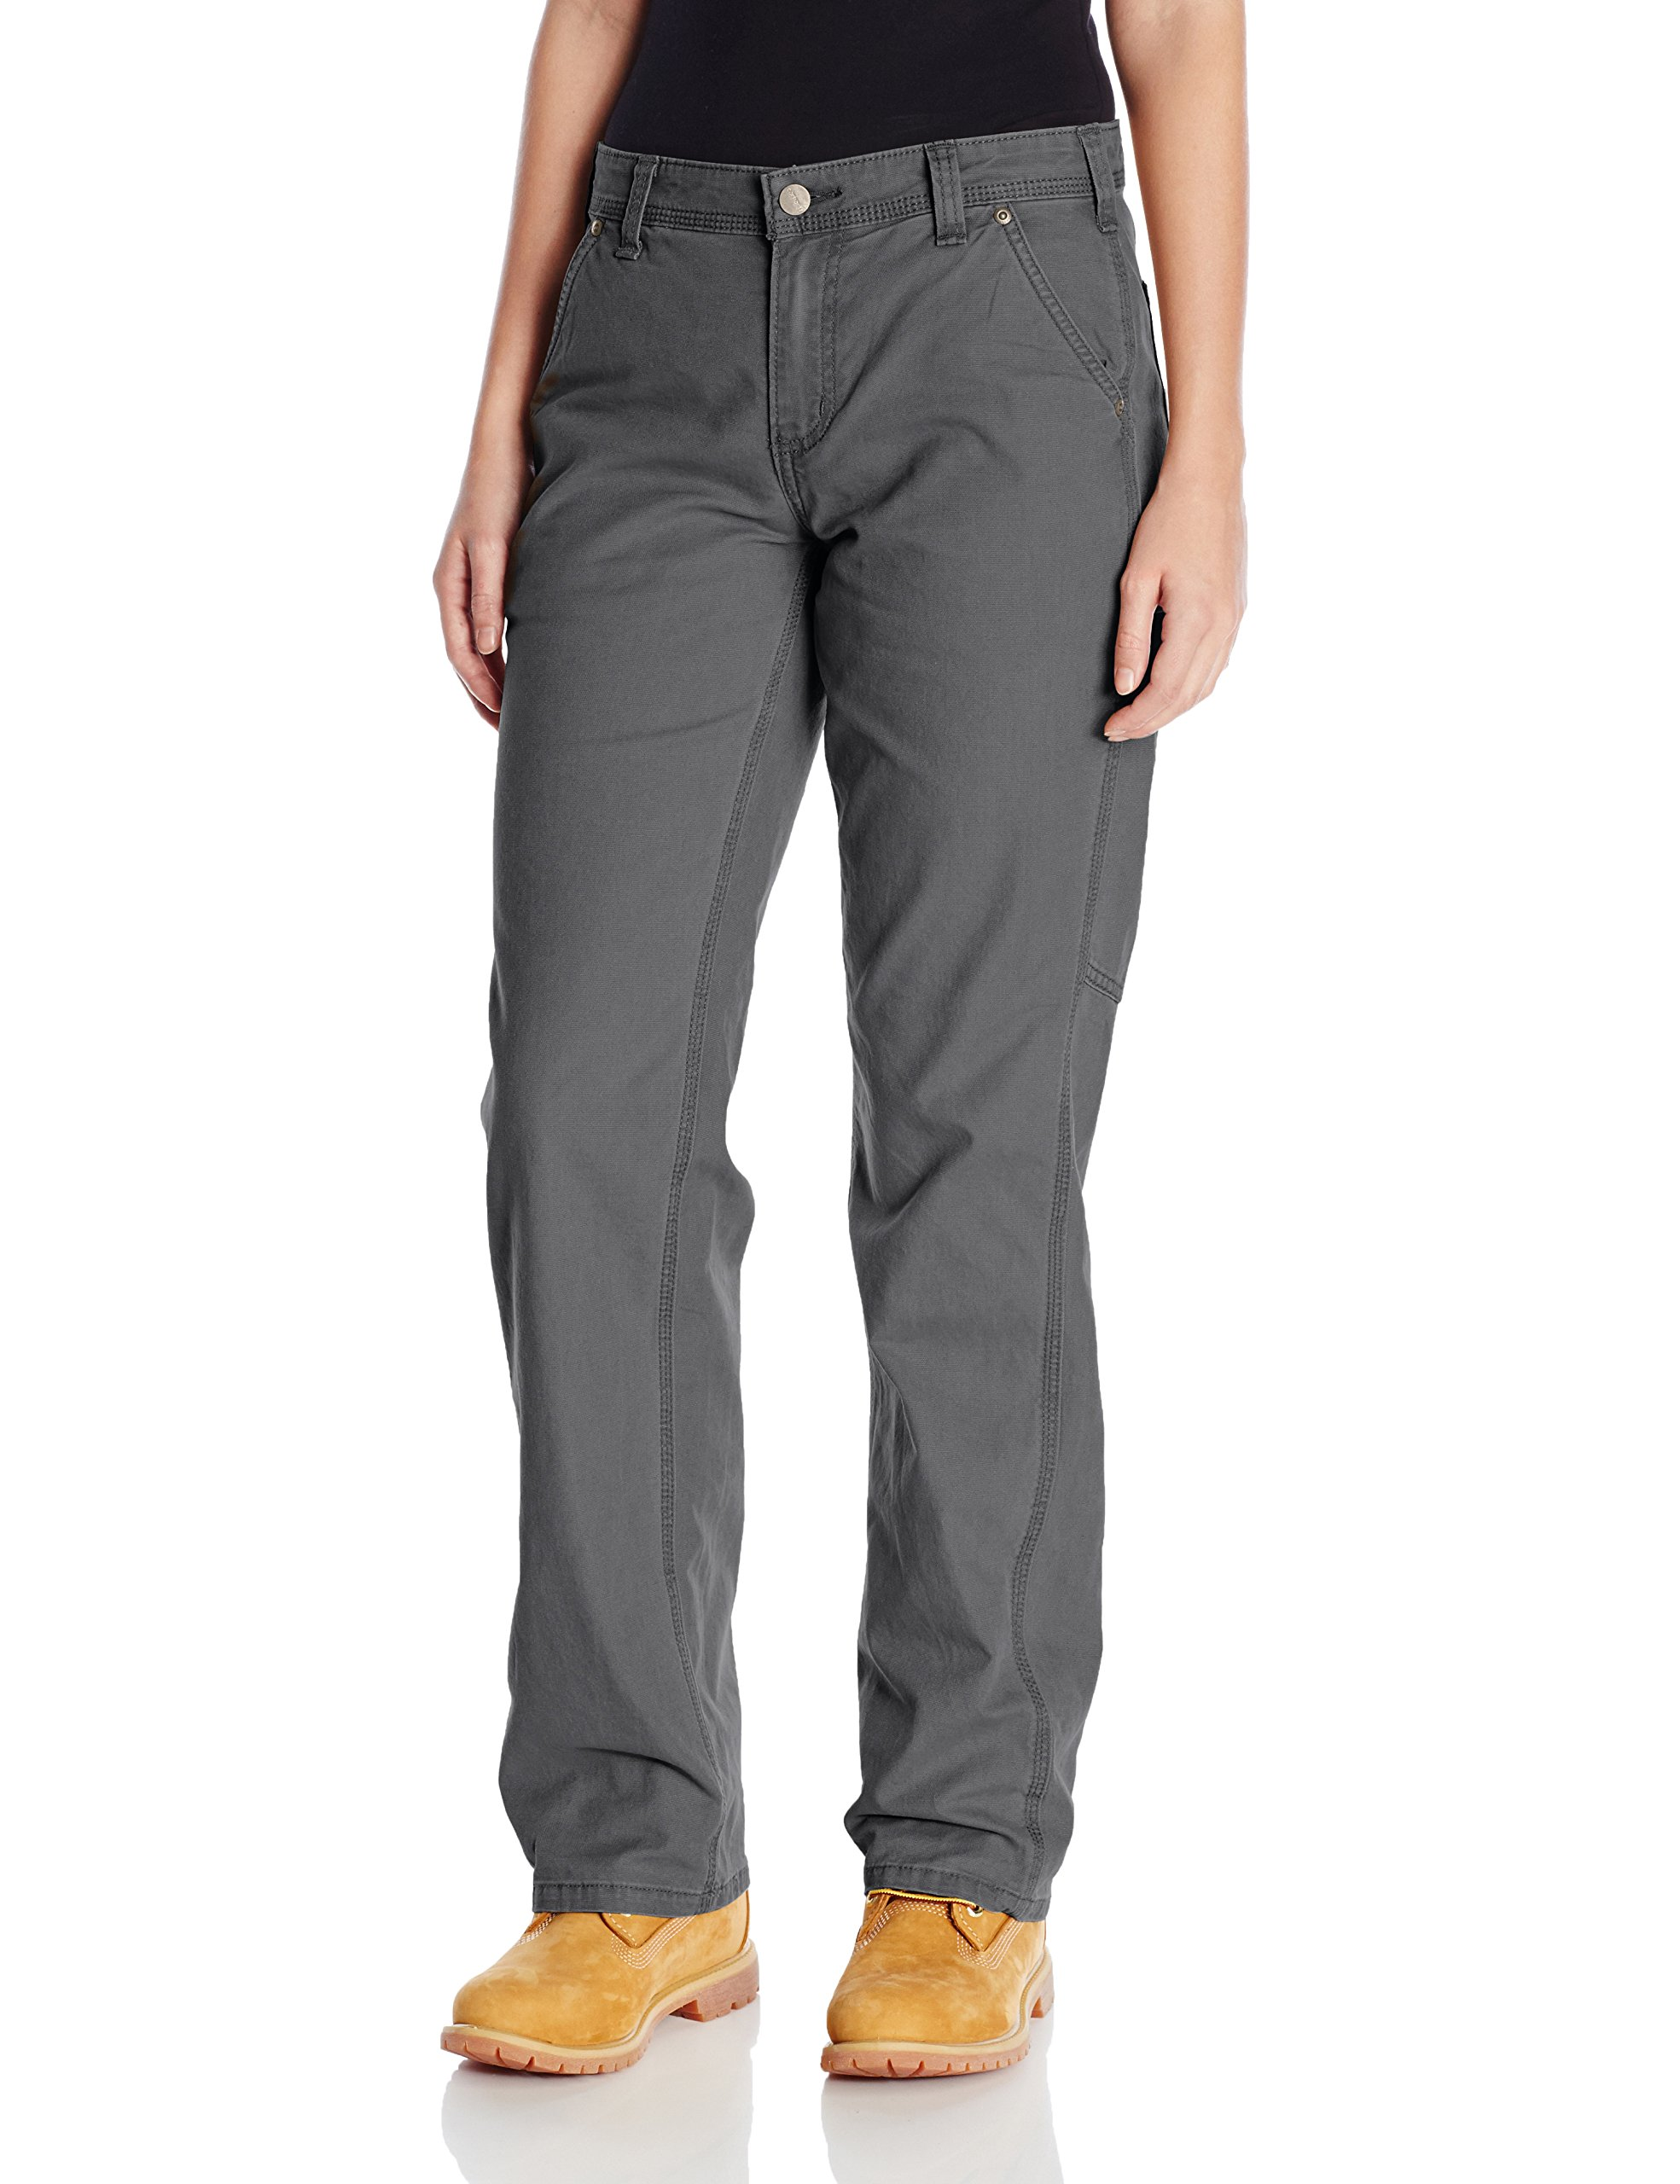 Carhartt Women's Original Fit Crawford Pant, Coal, 8